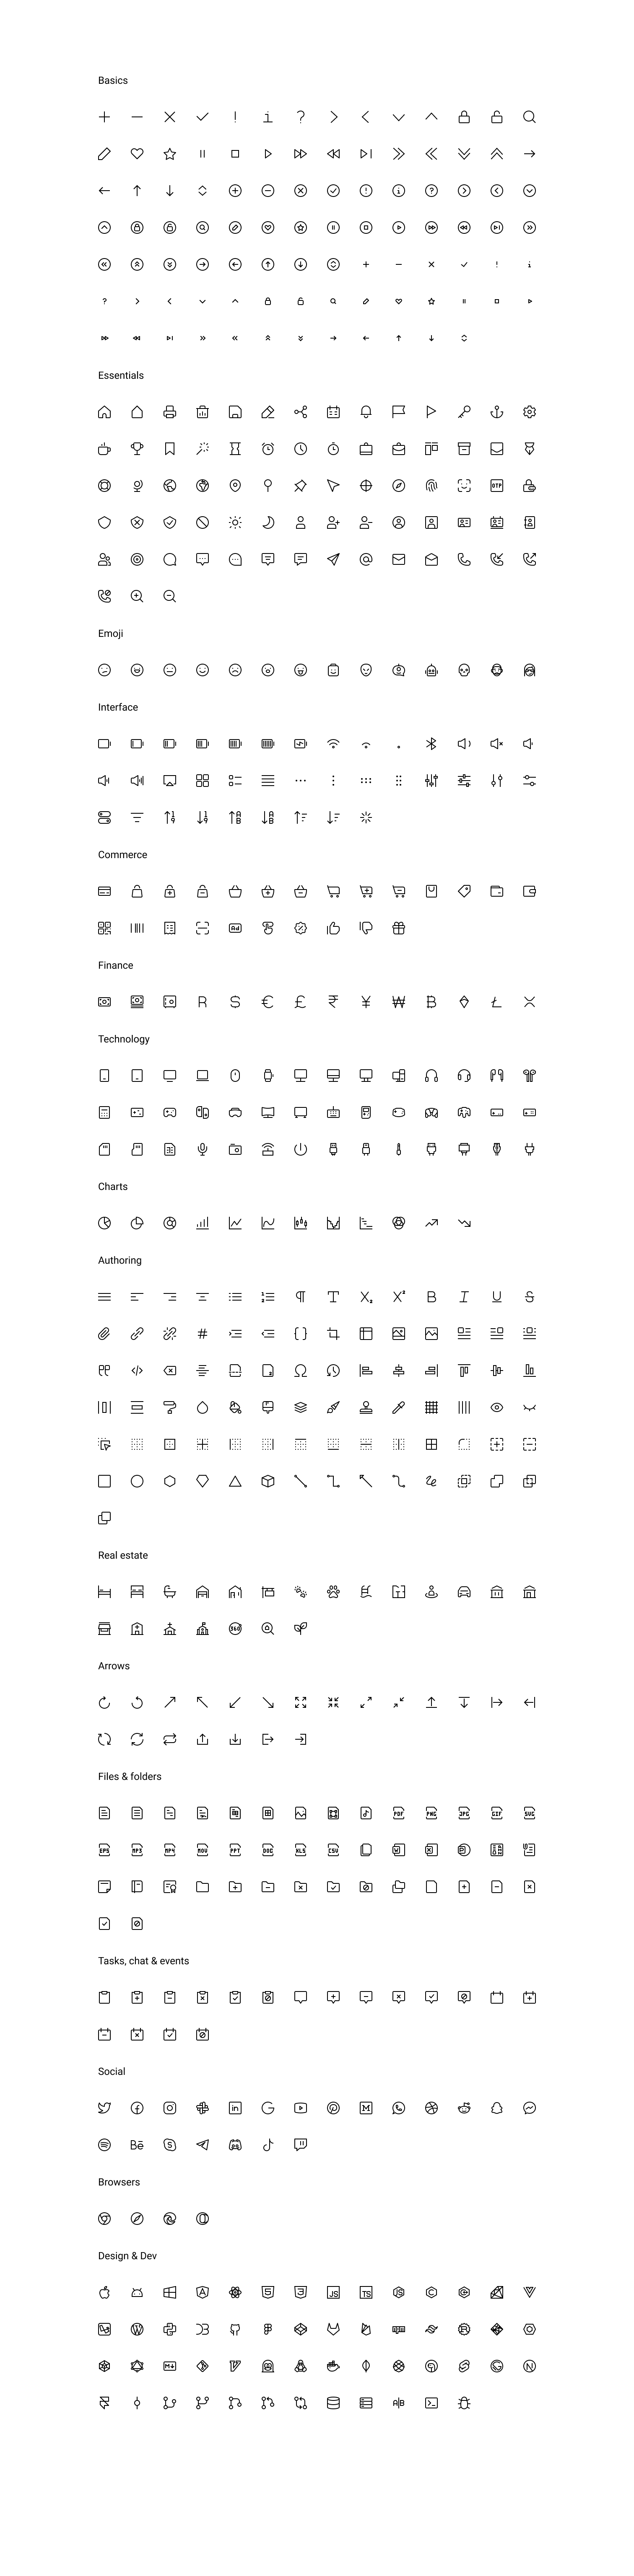 Teenyicons - Free Icon Set - Teenyicons is an awesome icon set with 1160 free icons both outlined and solid styles. 1px stroke is editable. The extensive library of the icons includes the following categories: Basics, Essentials, Emoji, Interface, Commerce, Technology, Authoring, Real estate, Arrows, Files & folders, Tasks, chat & events, Social, Browsers, Design & Dev.